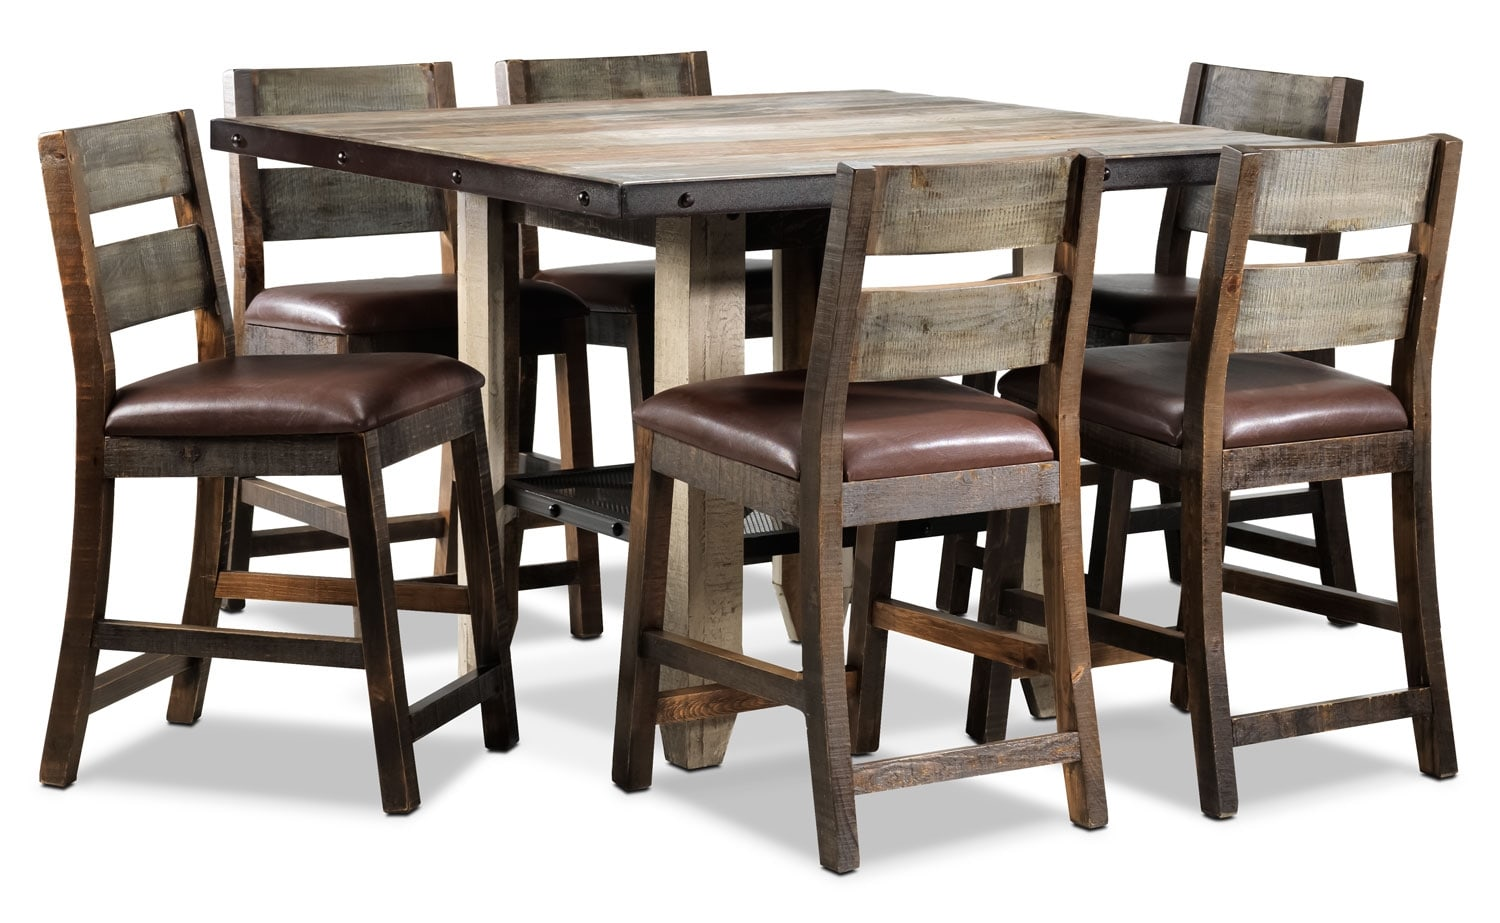 Dining Room Furniture - Allison Pine 7-Piece Pub-Height Dining Room Set - Antiqued Pine